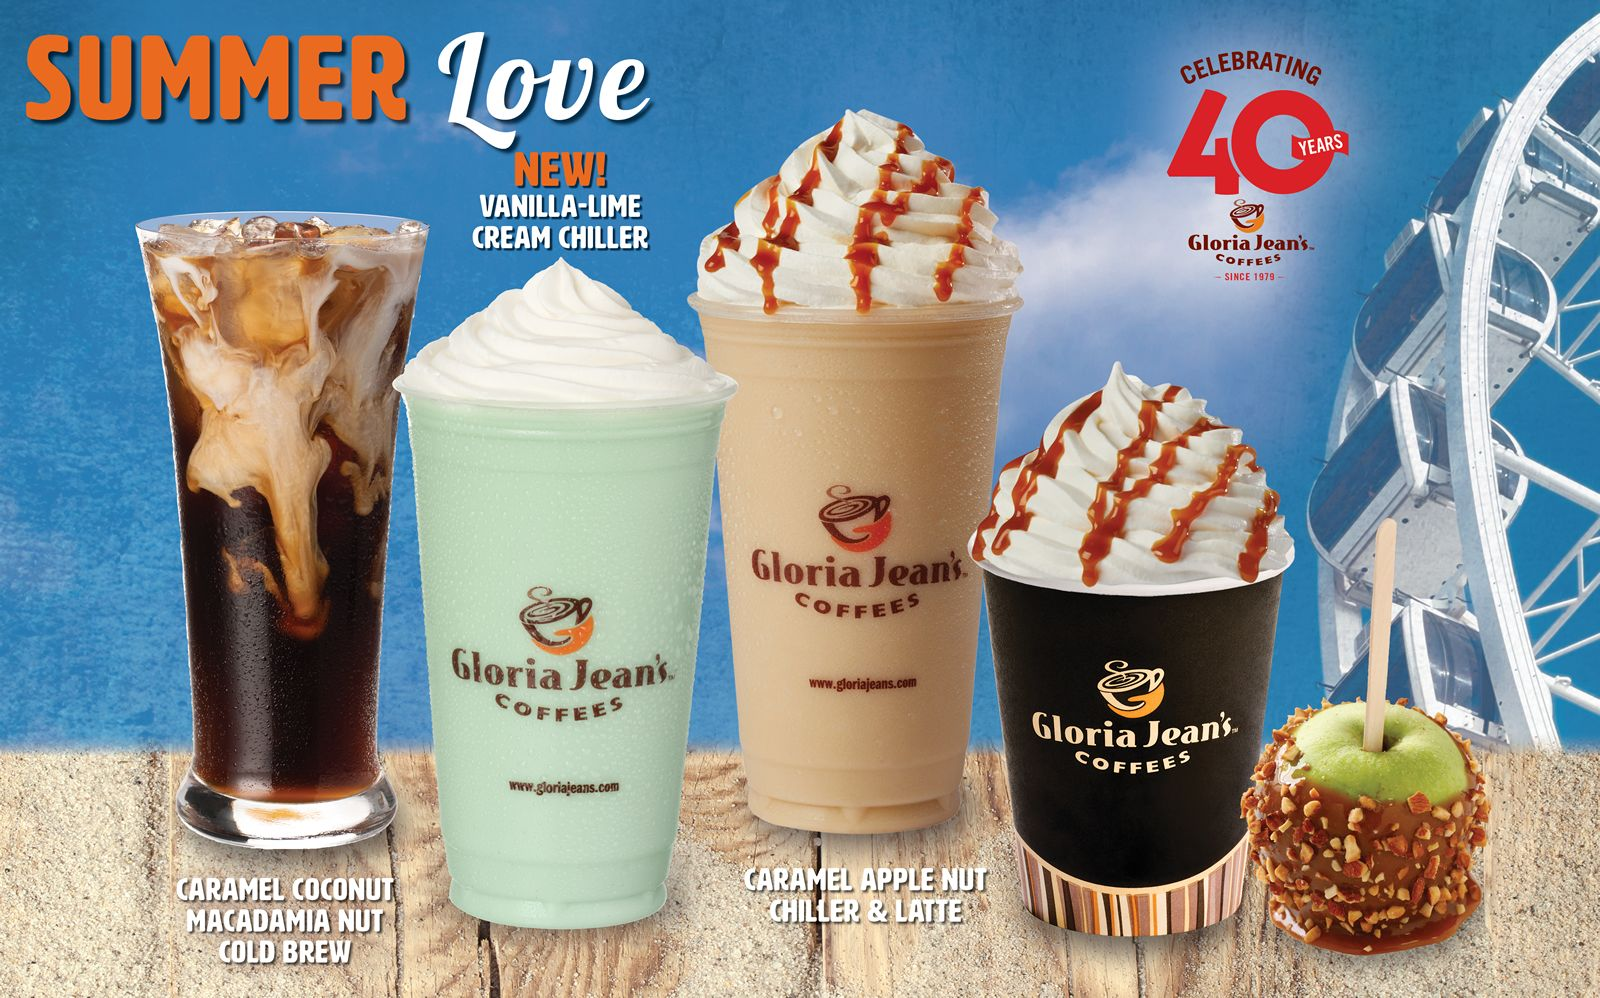 Gloria Jean's Coffees Summer Seasonal NEW! Vanilla-Lime Cream Chiller, Caramel Apple Nut Chiller & Latte and Caramel Macadamia Nut Cold Brew